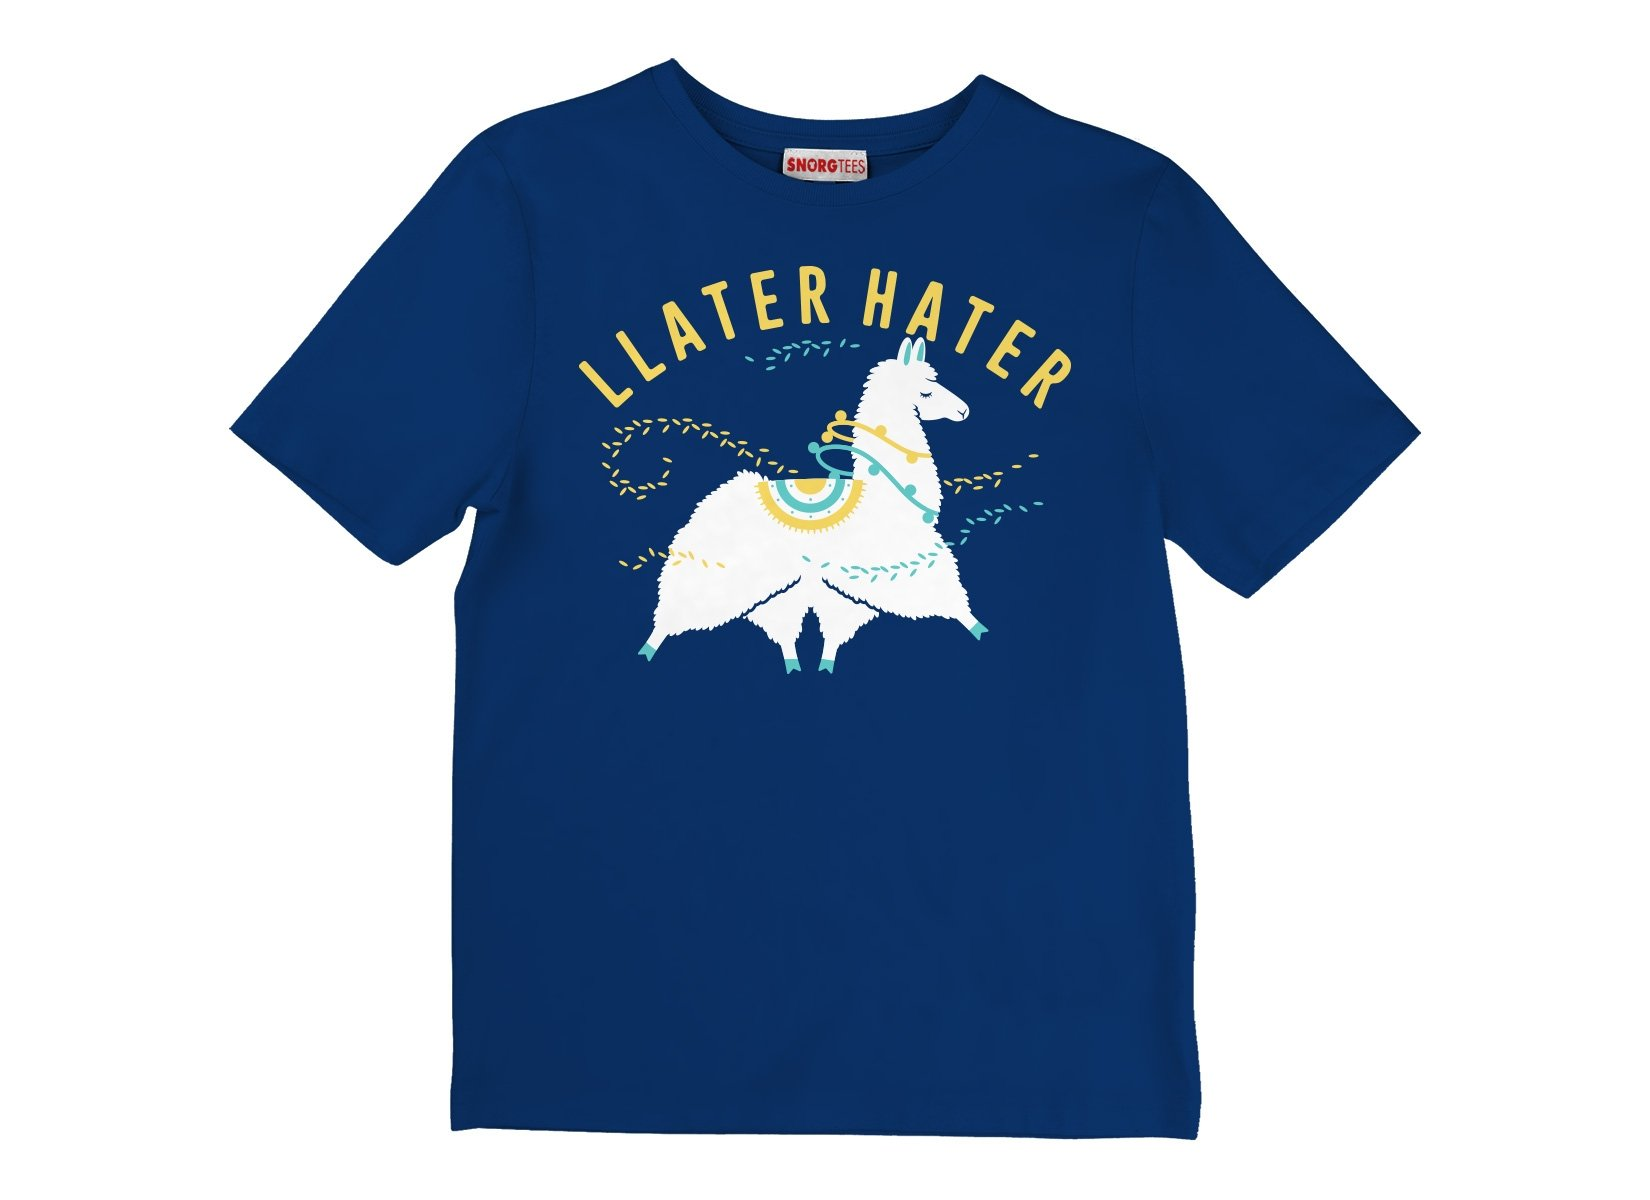 Llater Hater on Kids T-Shirt